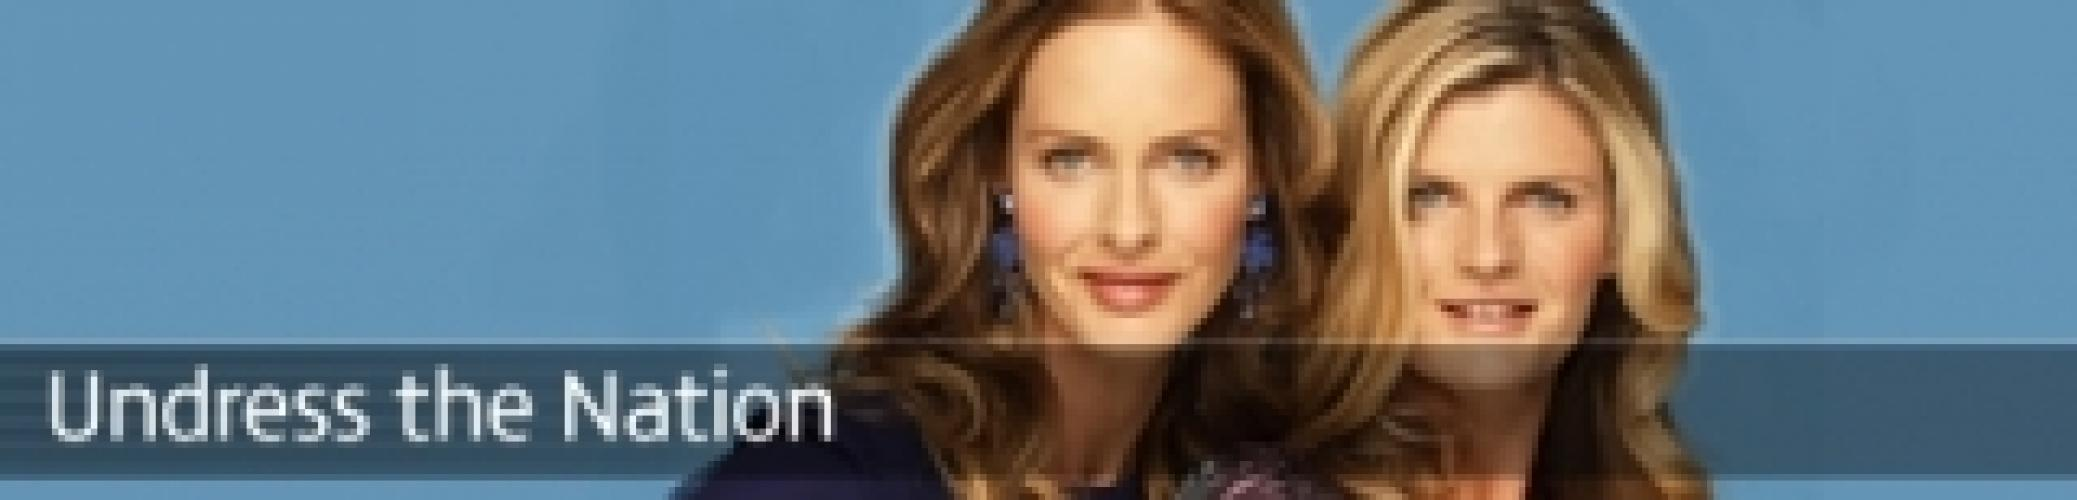 Trinny & Susannah Undress the Nation next episode air date poster